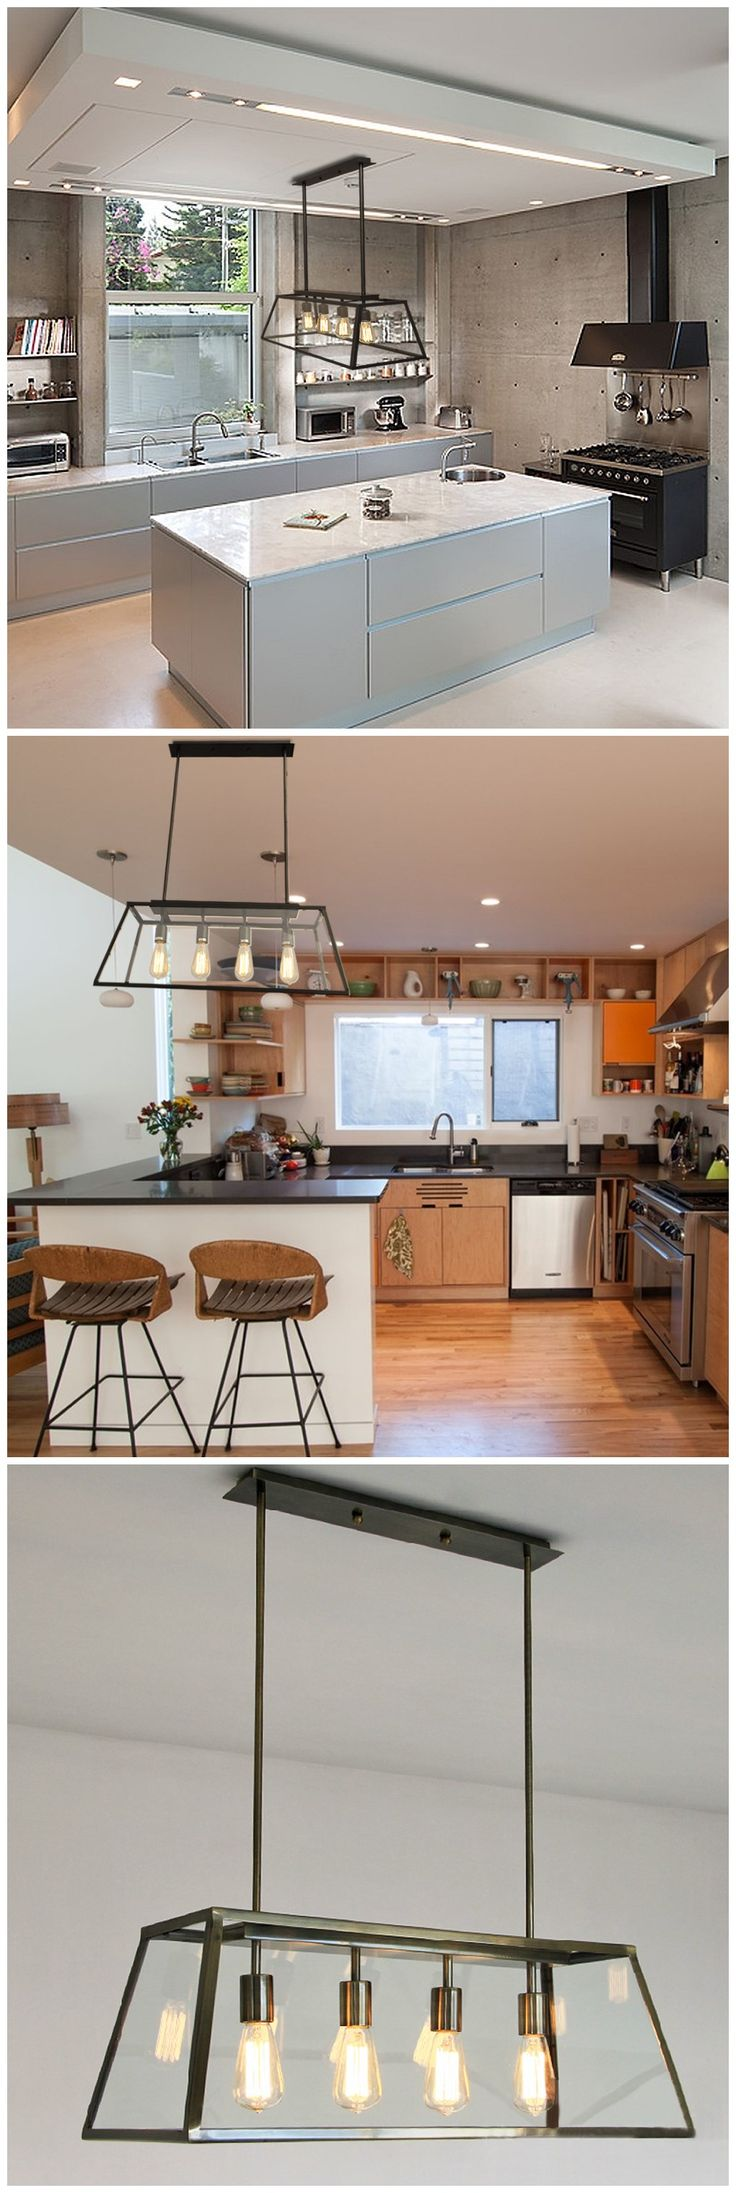 Rectangle Metal and Glass Chandelier: Clean and sleek with an industrial edge http://www.zosomart.com/home-living/lamps-lighting/restoration-new-industrial-vintage-pendant-light-chandelier-glass-w-led-bulbs.html